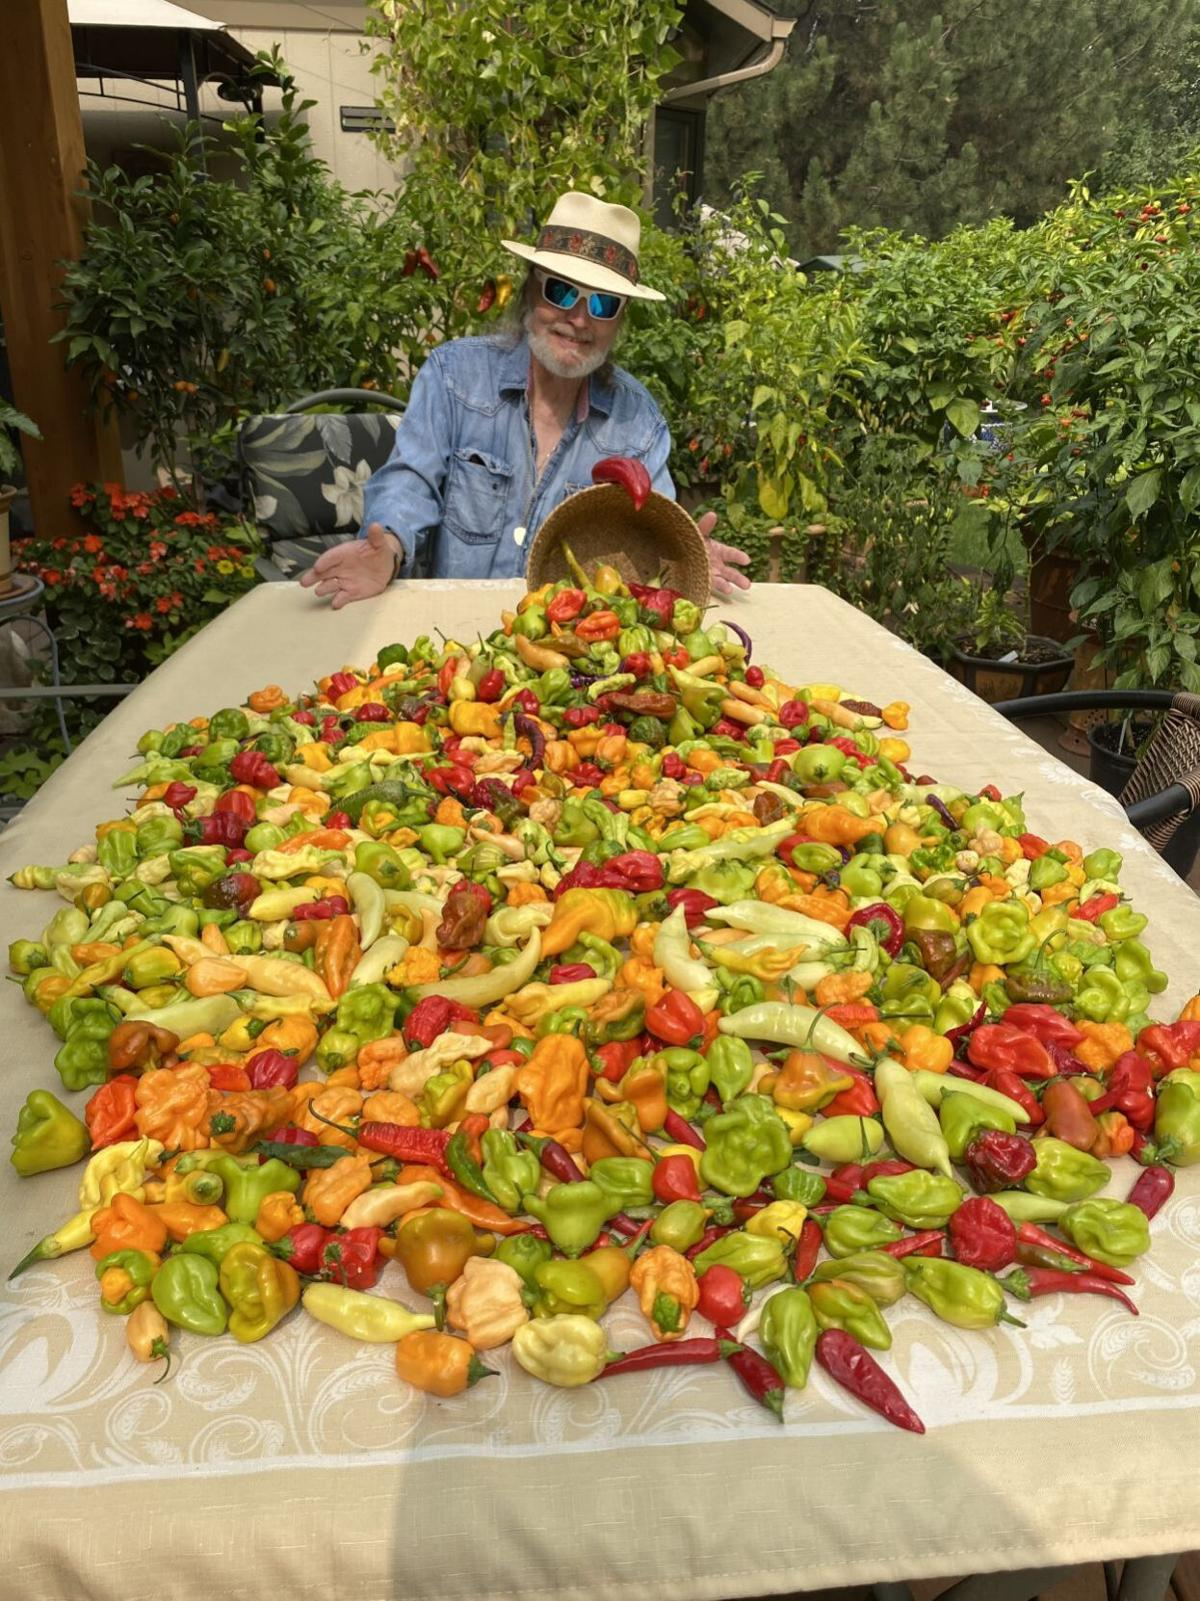 Terry with peppers large batch.jpg